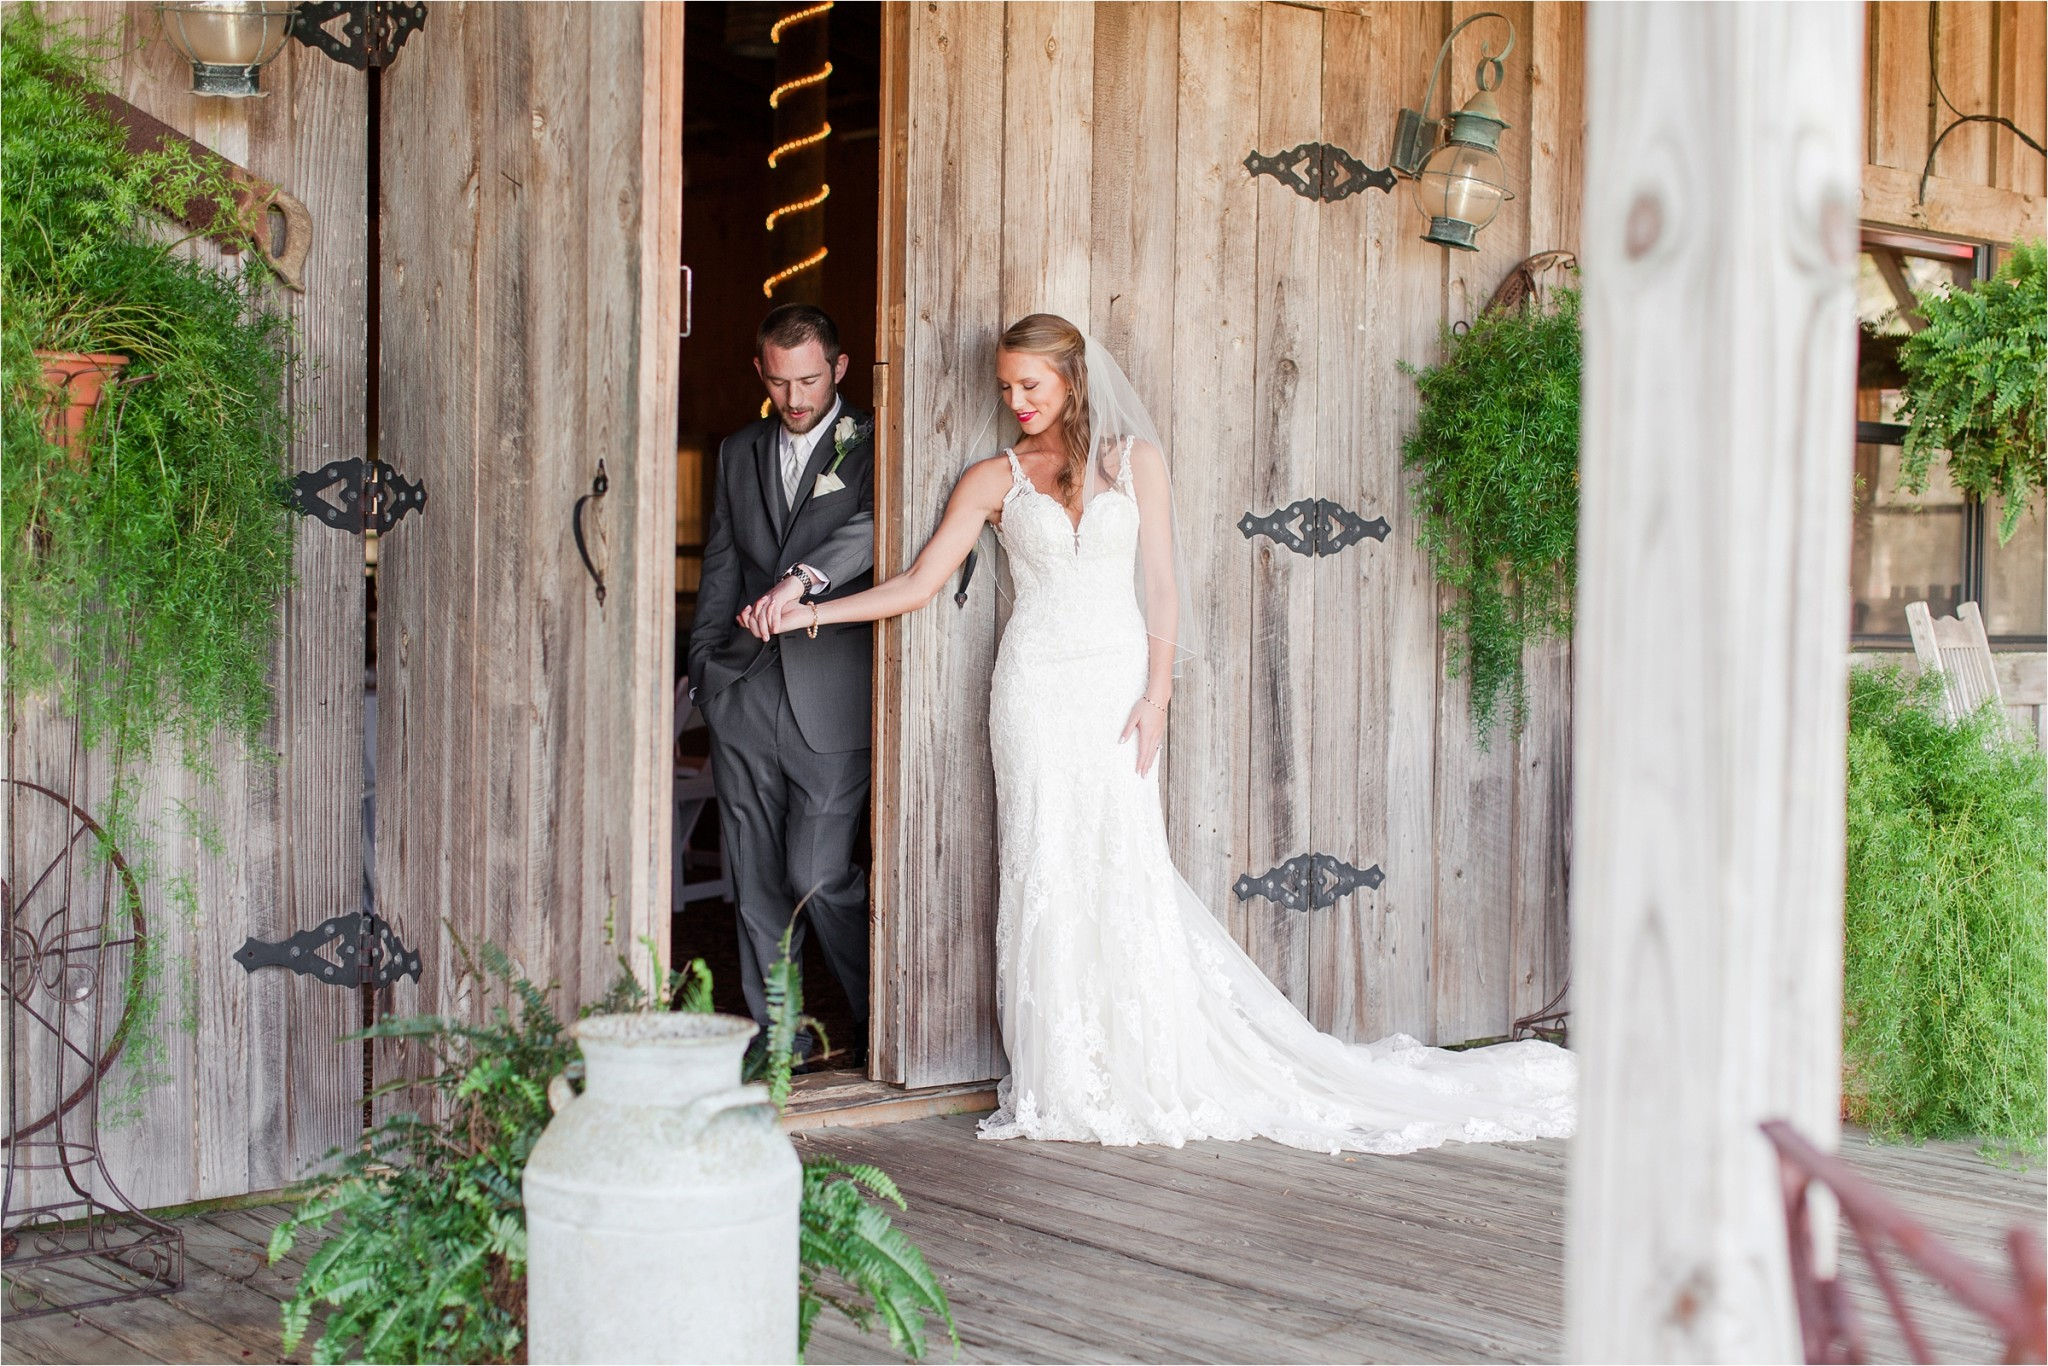 exchanging letters at their Oak Hollow Farm Wedding